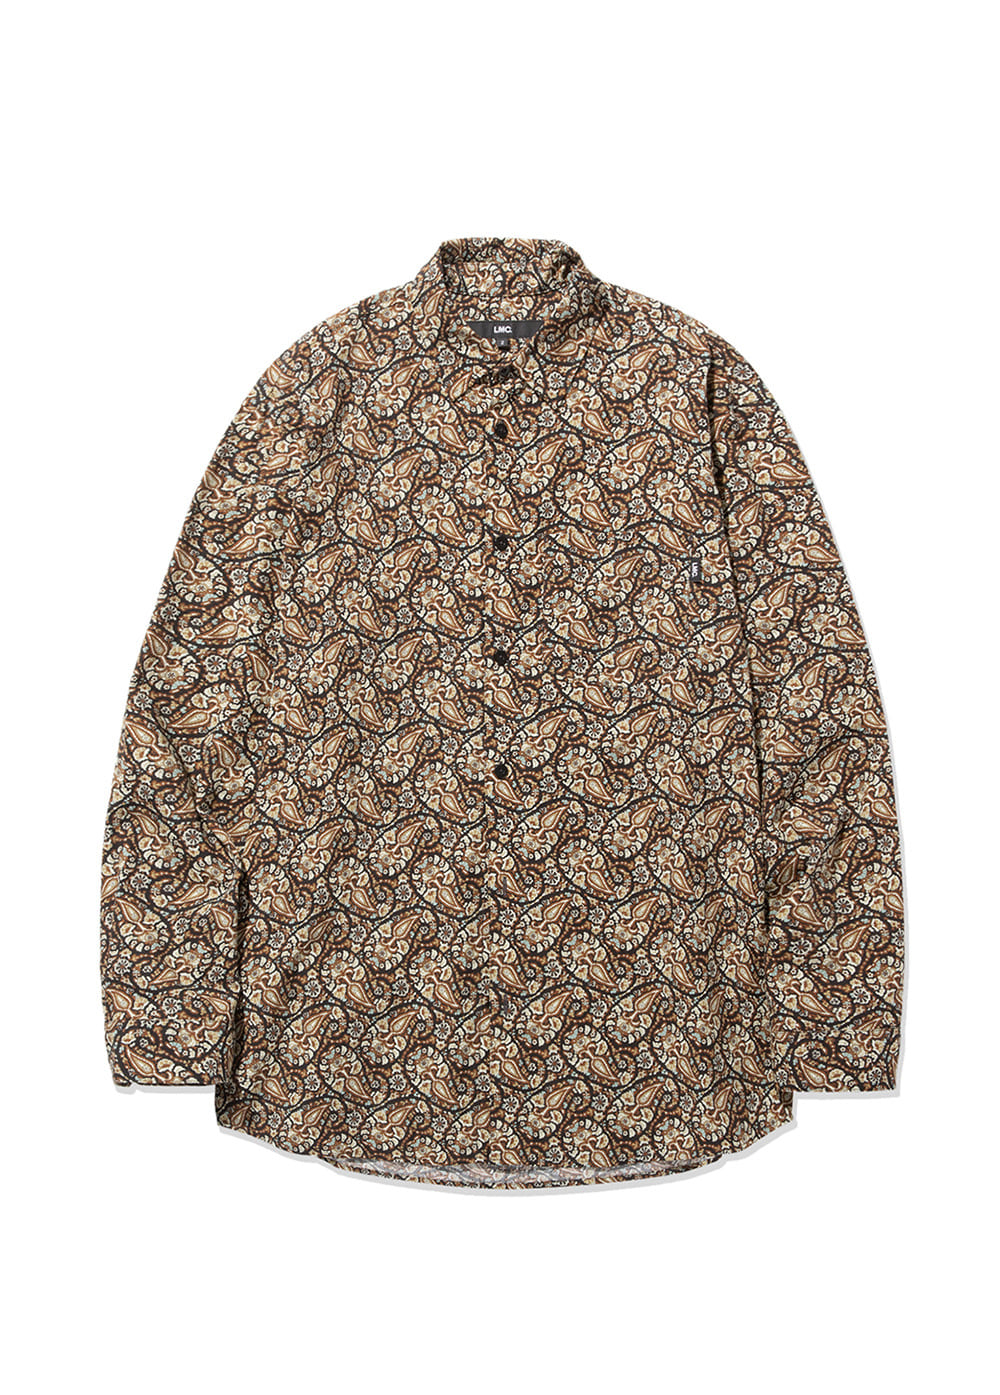 LMC PAISLEY SHIRT brown